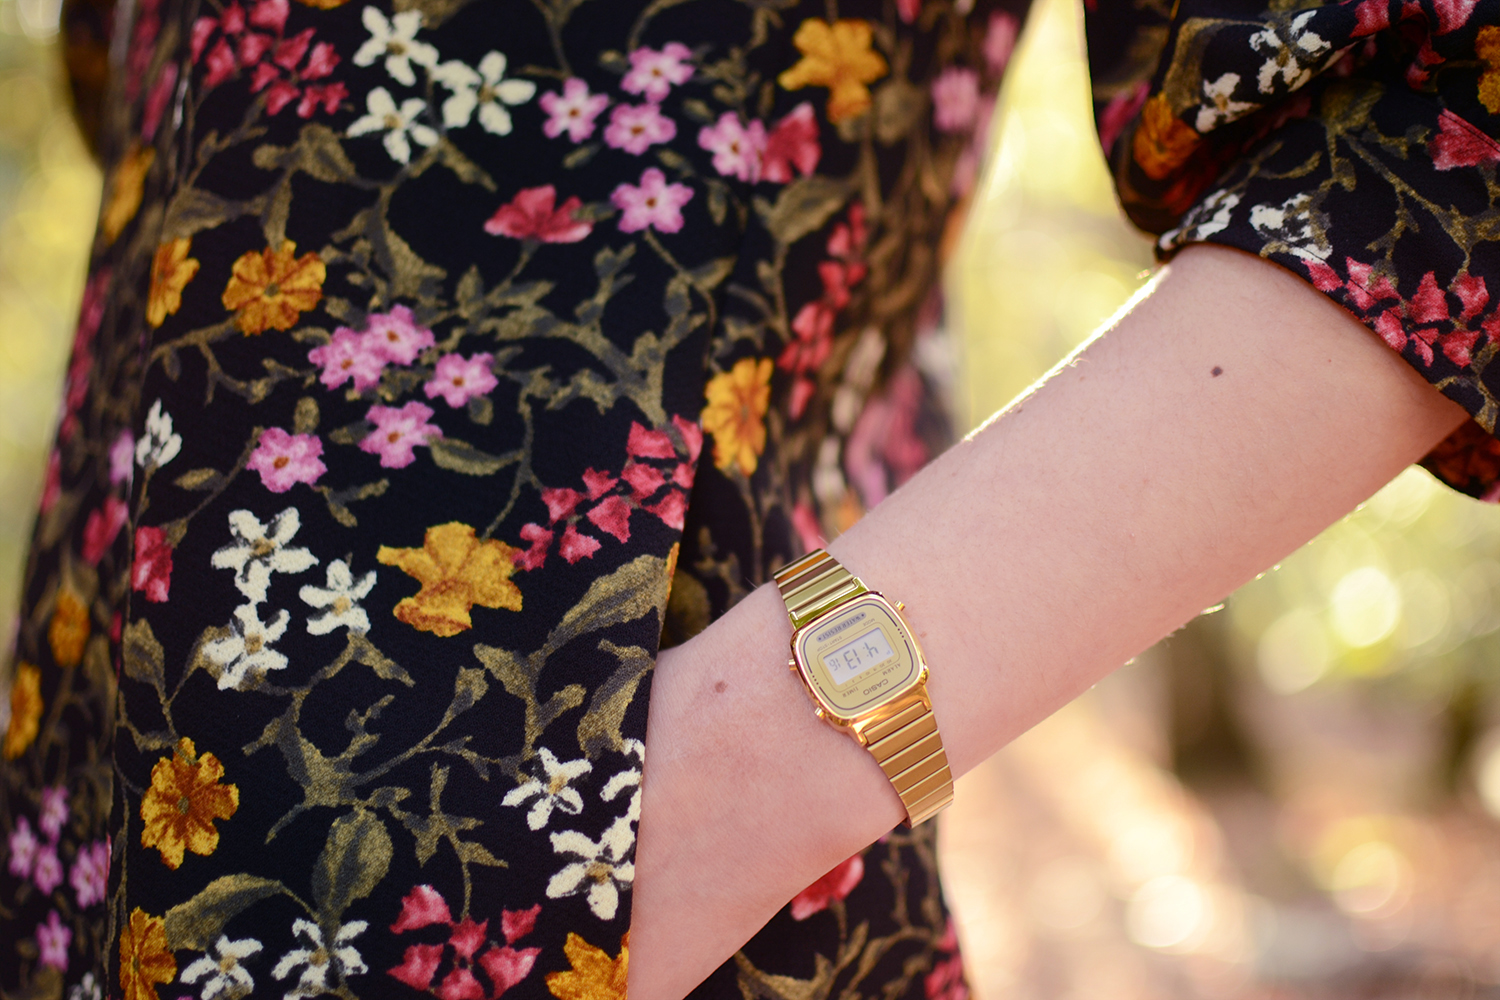 Retromantisch Zara floral dress black jurkje bloemen fashion blog retro vintage style look outfit casio watch gold